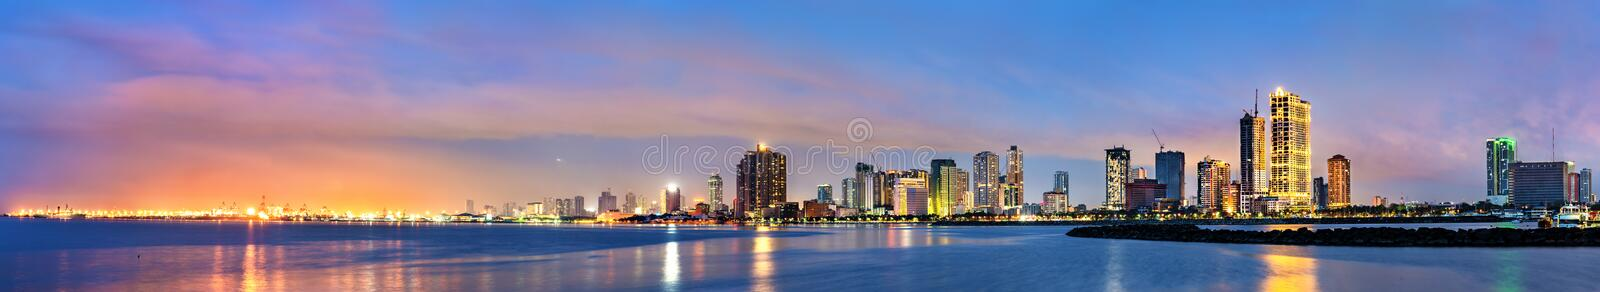 Skyline of Manila,the capital of the Philippines royalty free stock image